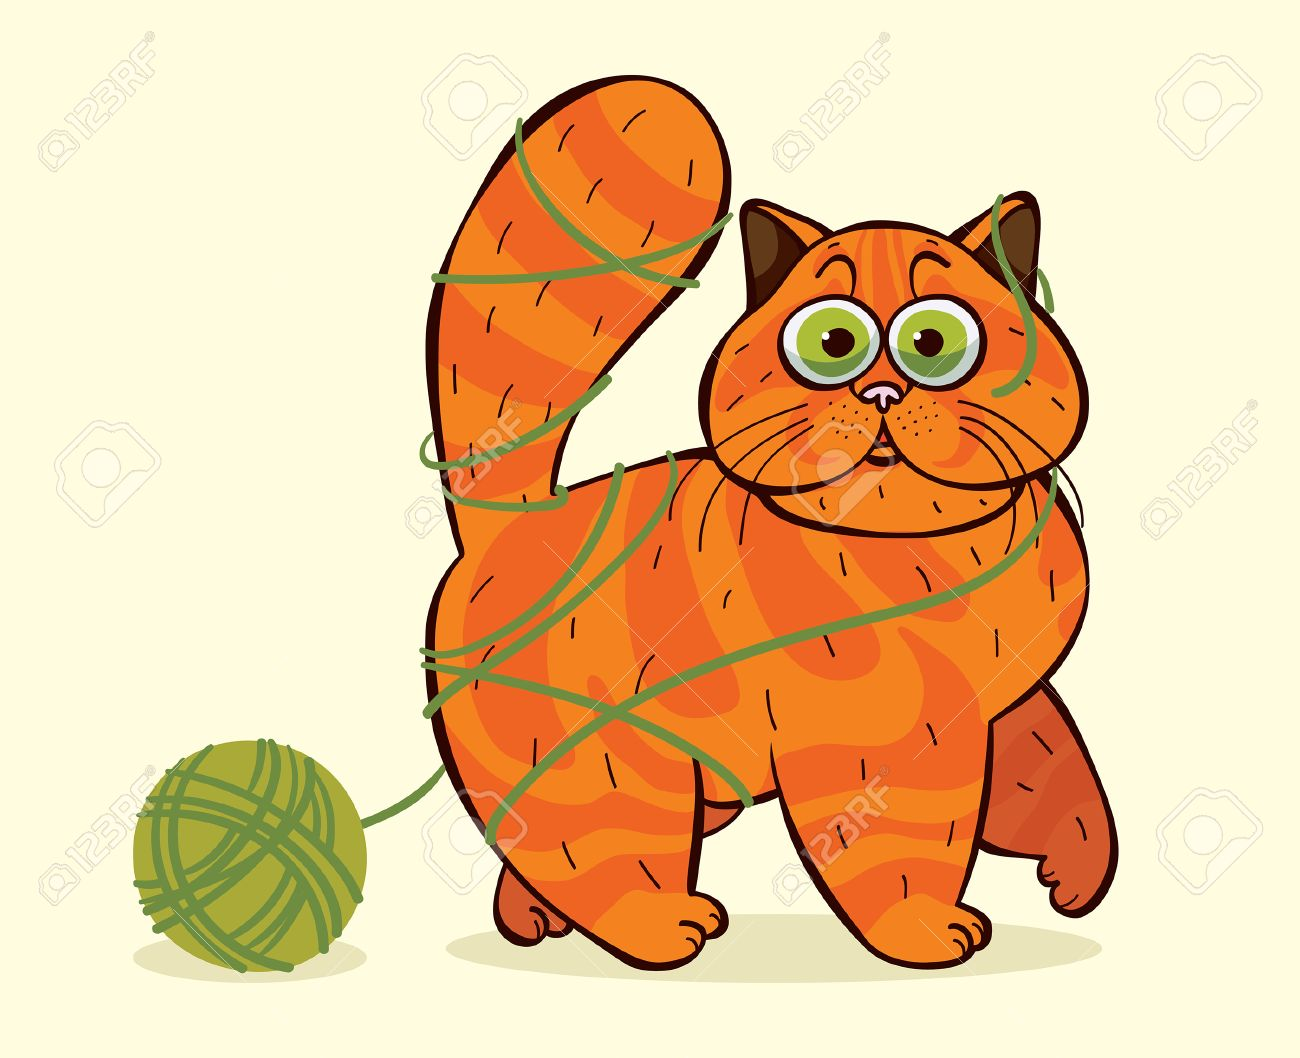 Funny Cartoon Domestic Cat Caught In A Tangle Of Yarn Vector